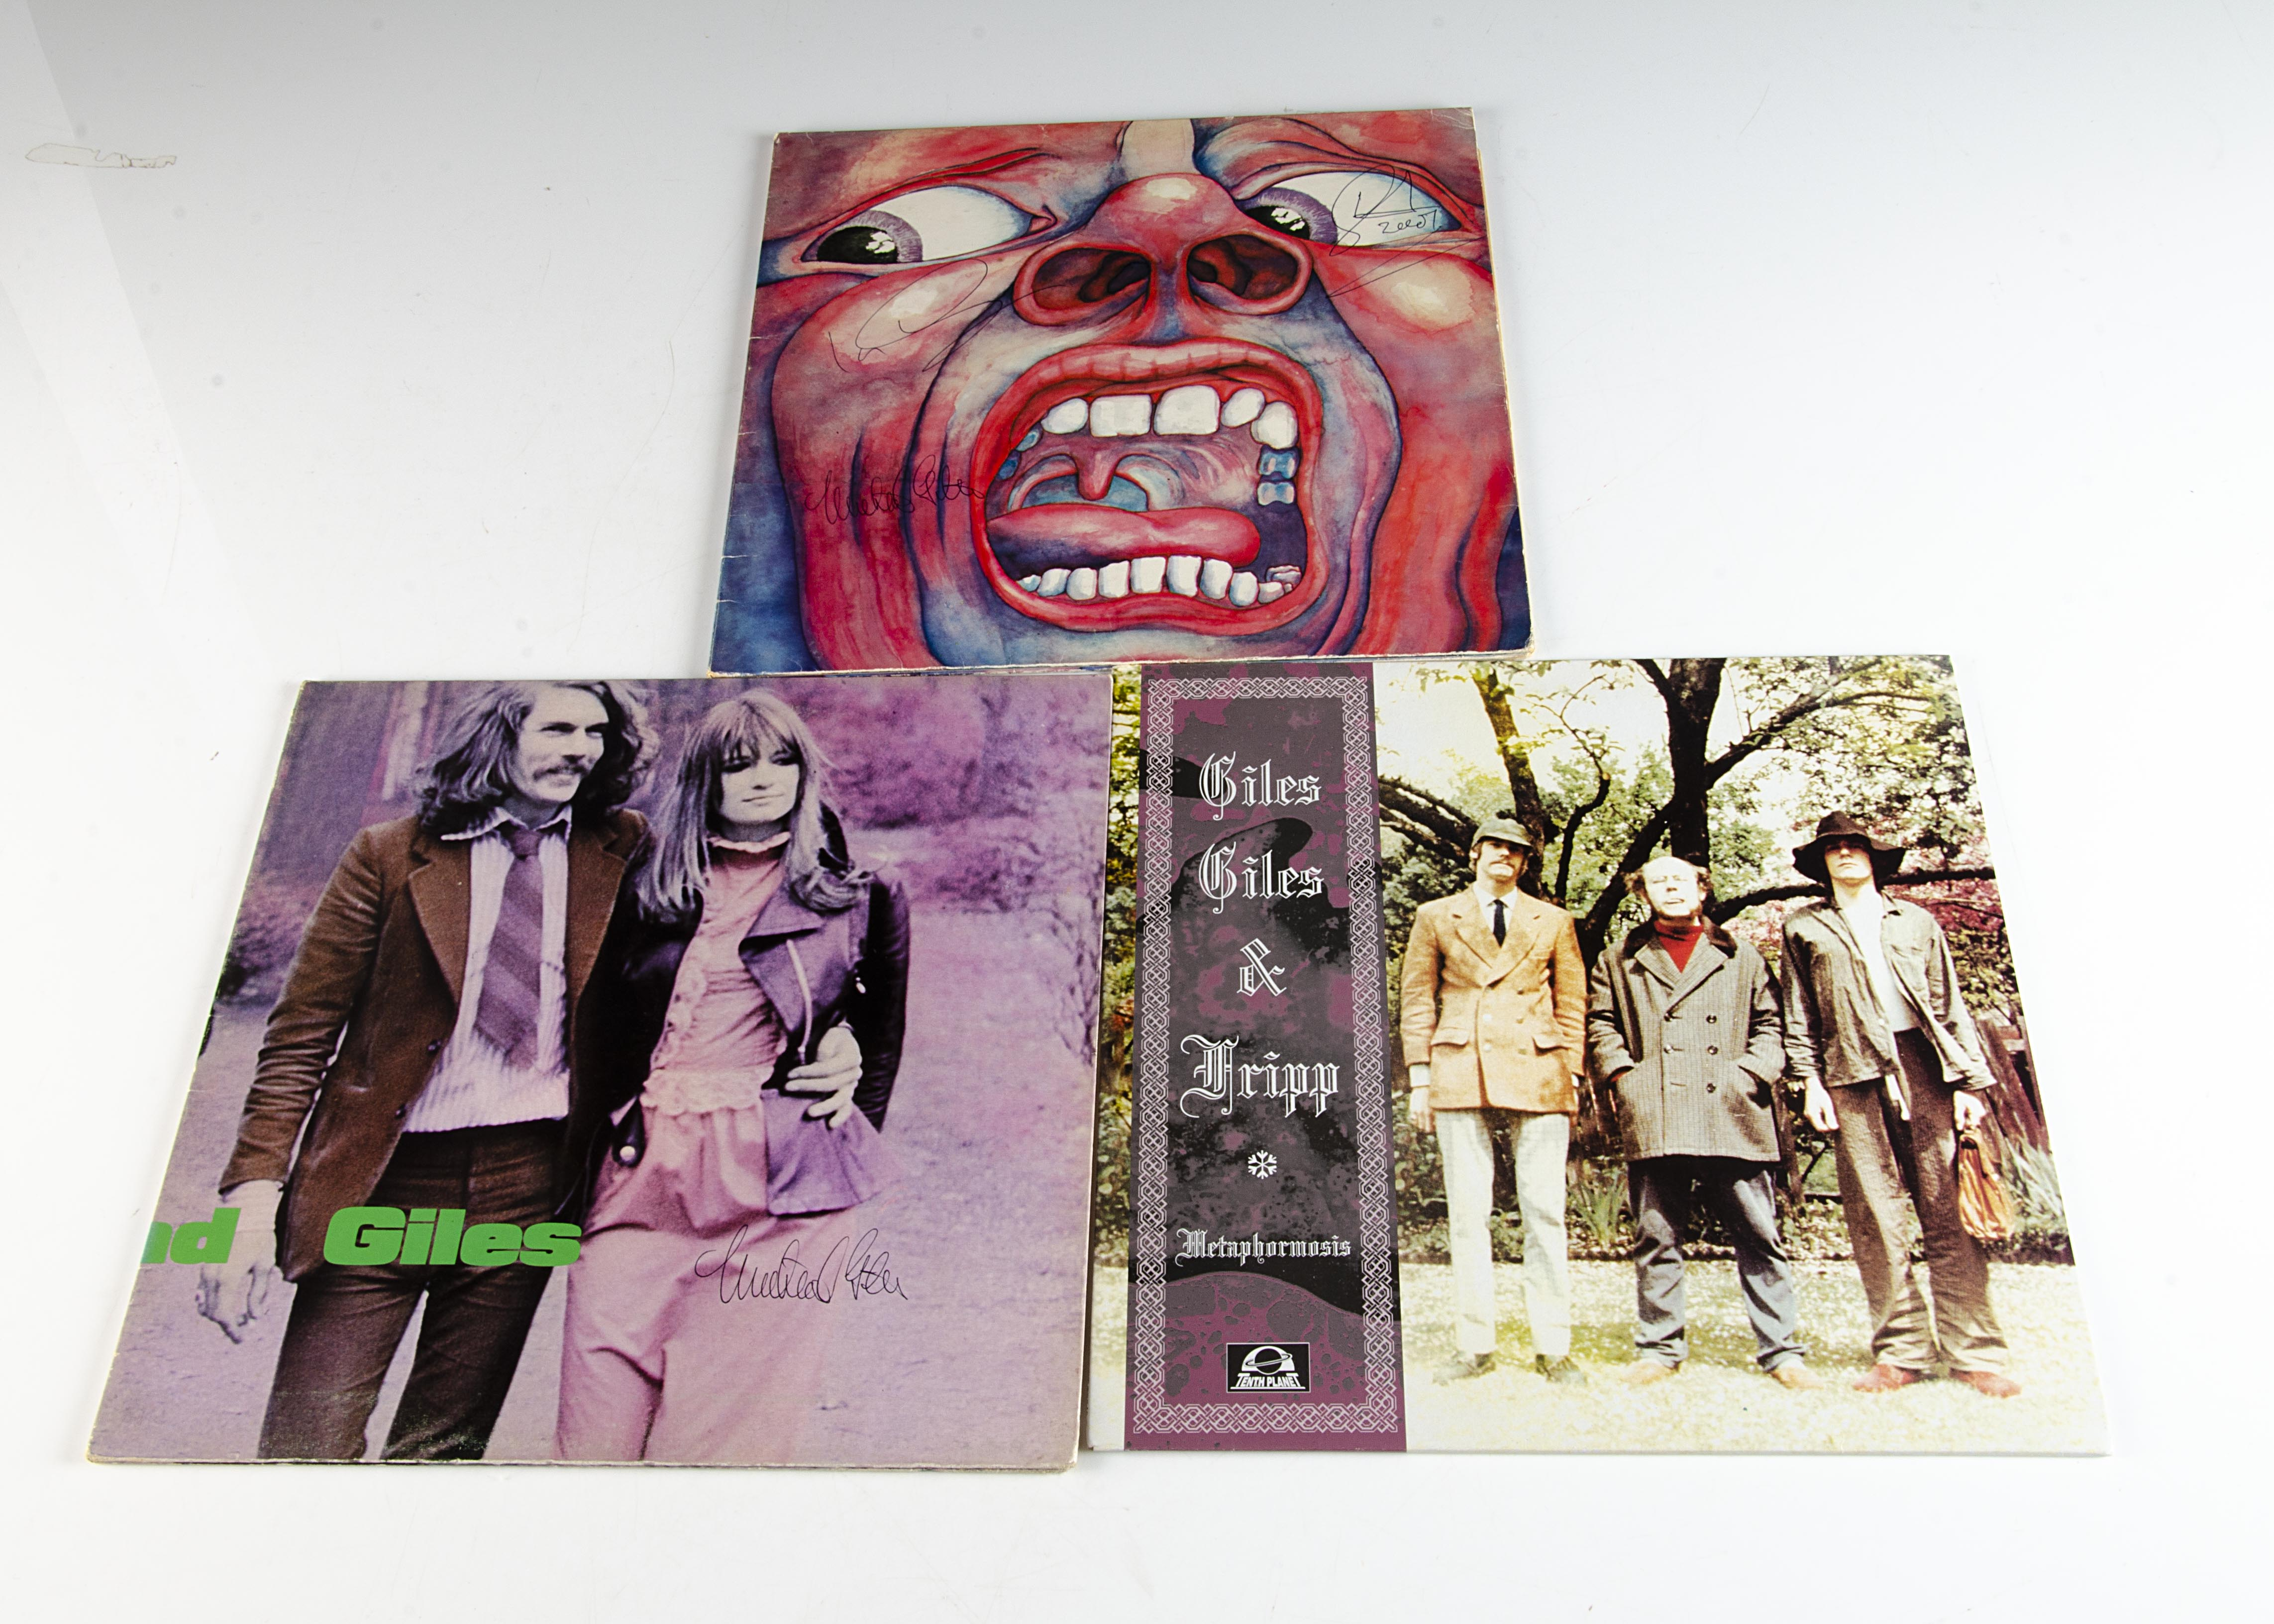 King Crimson and Related LPs / Signatures, three albums, all signed by Ian McDonald, Michael Giles - Image 4 of 4